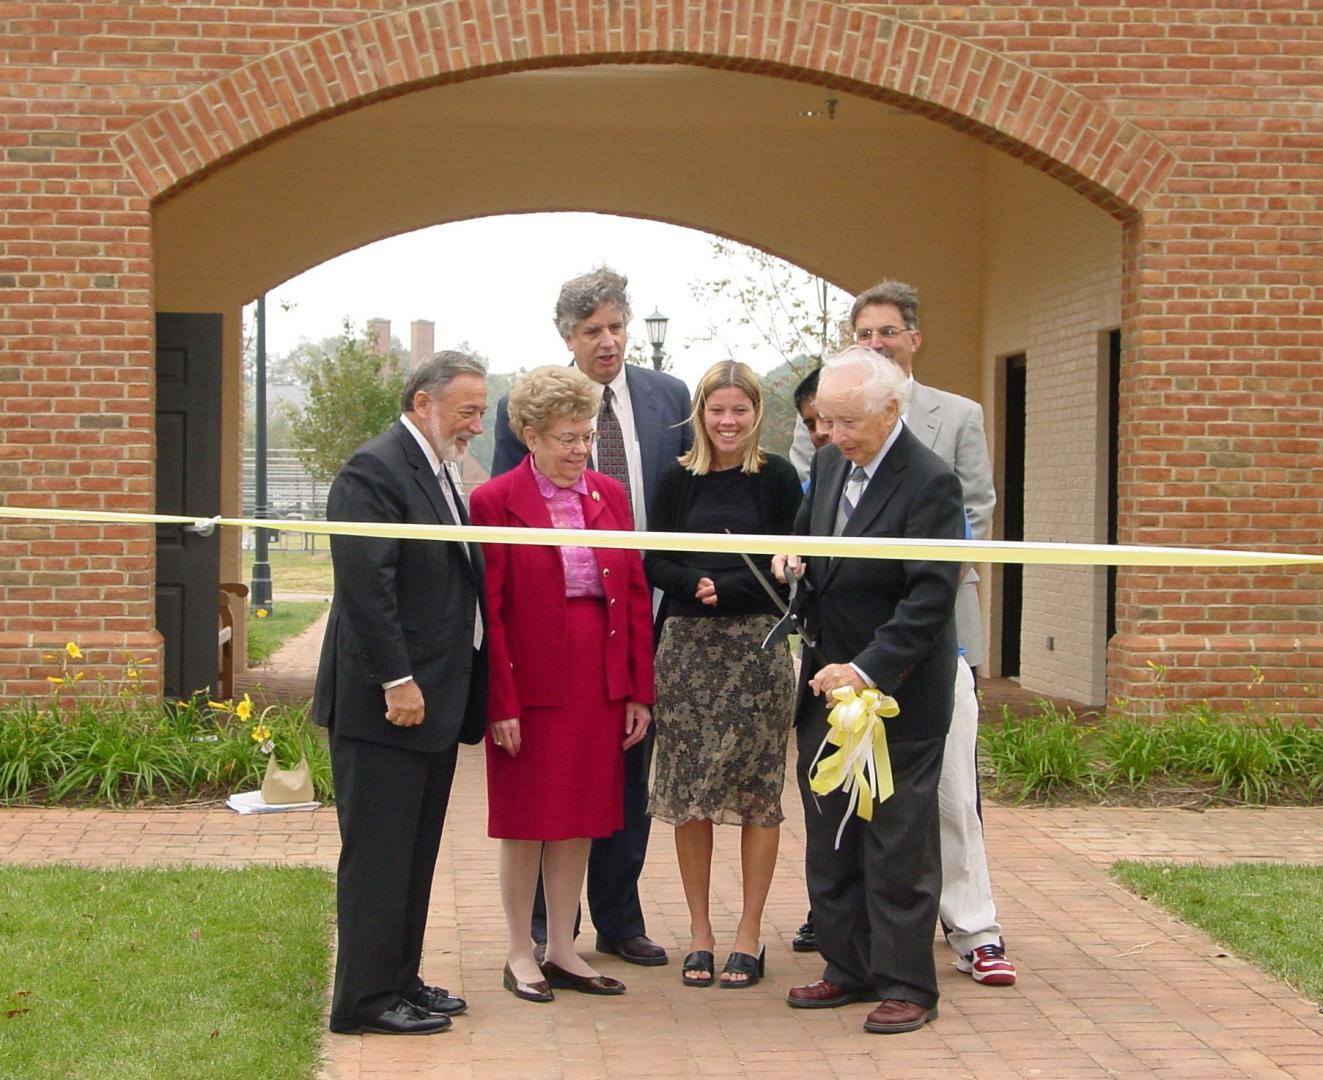 Photo of Waring at the ribbon cutting for the Waring Commons from 2003